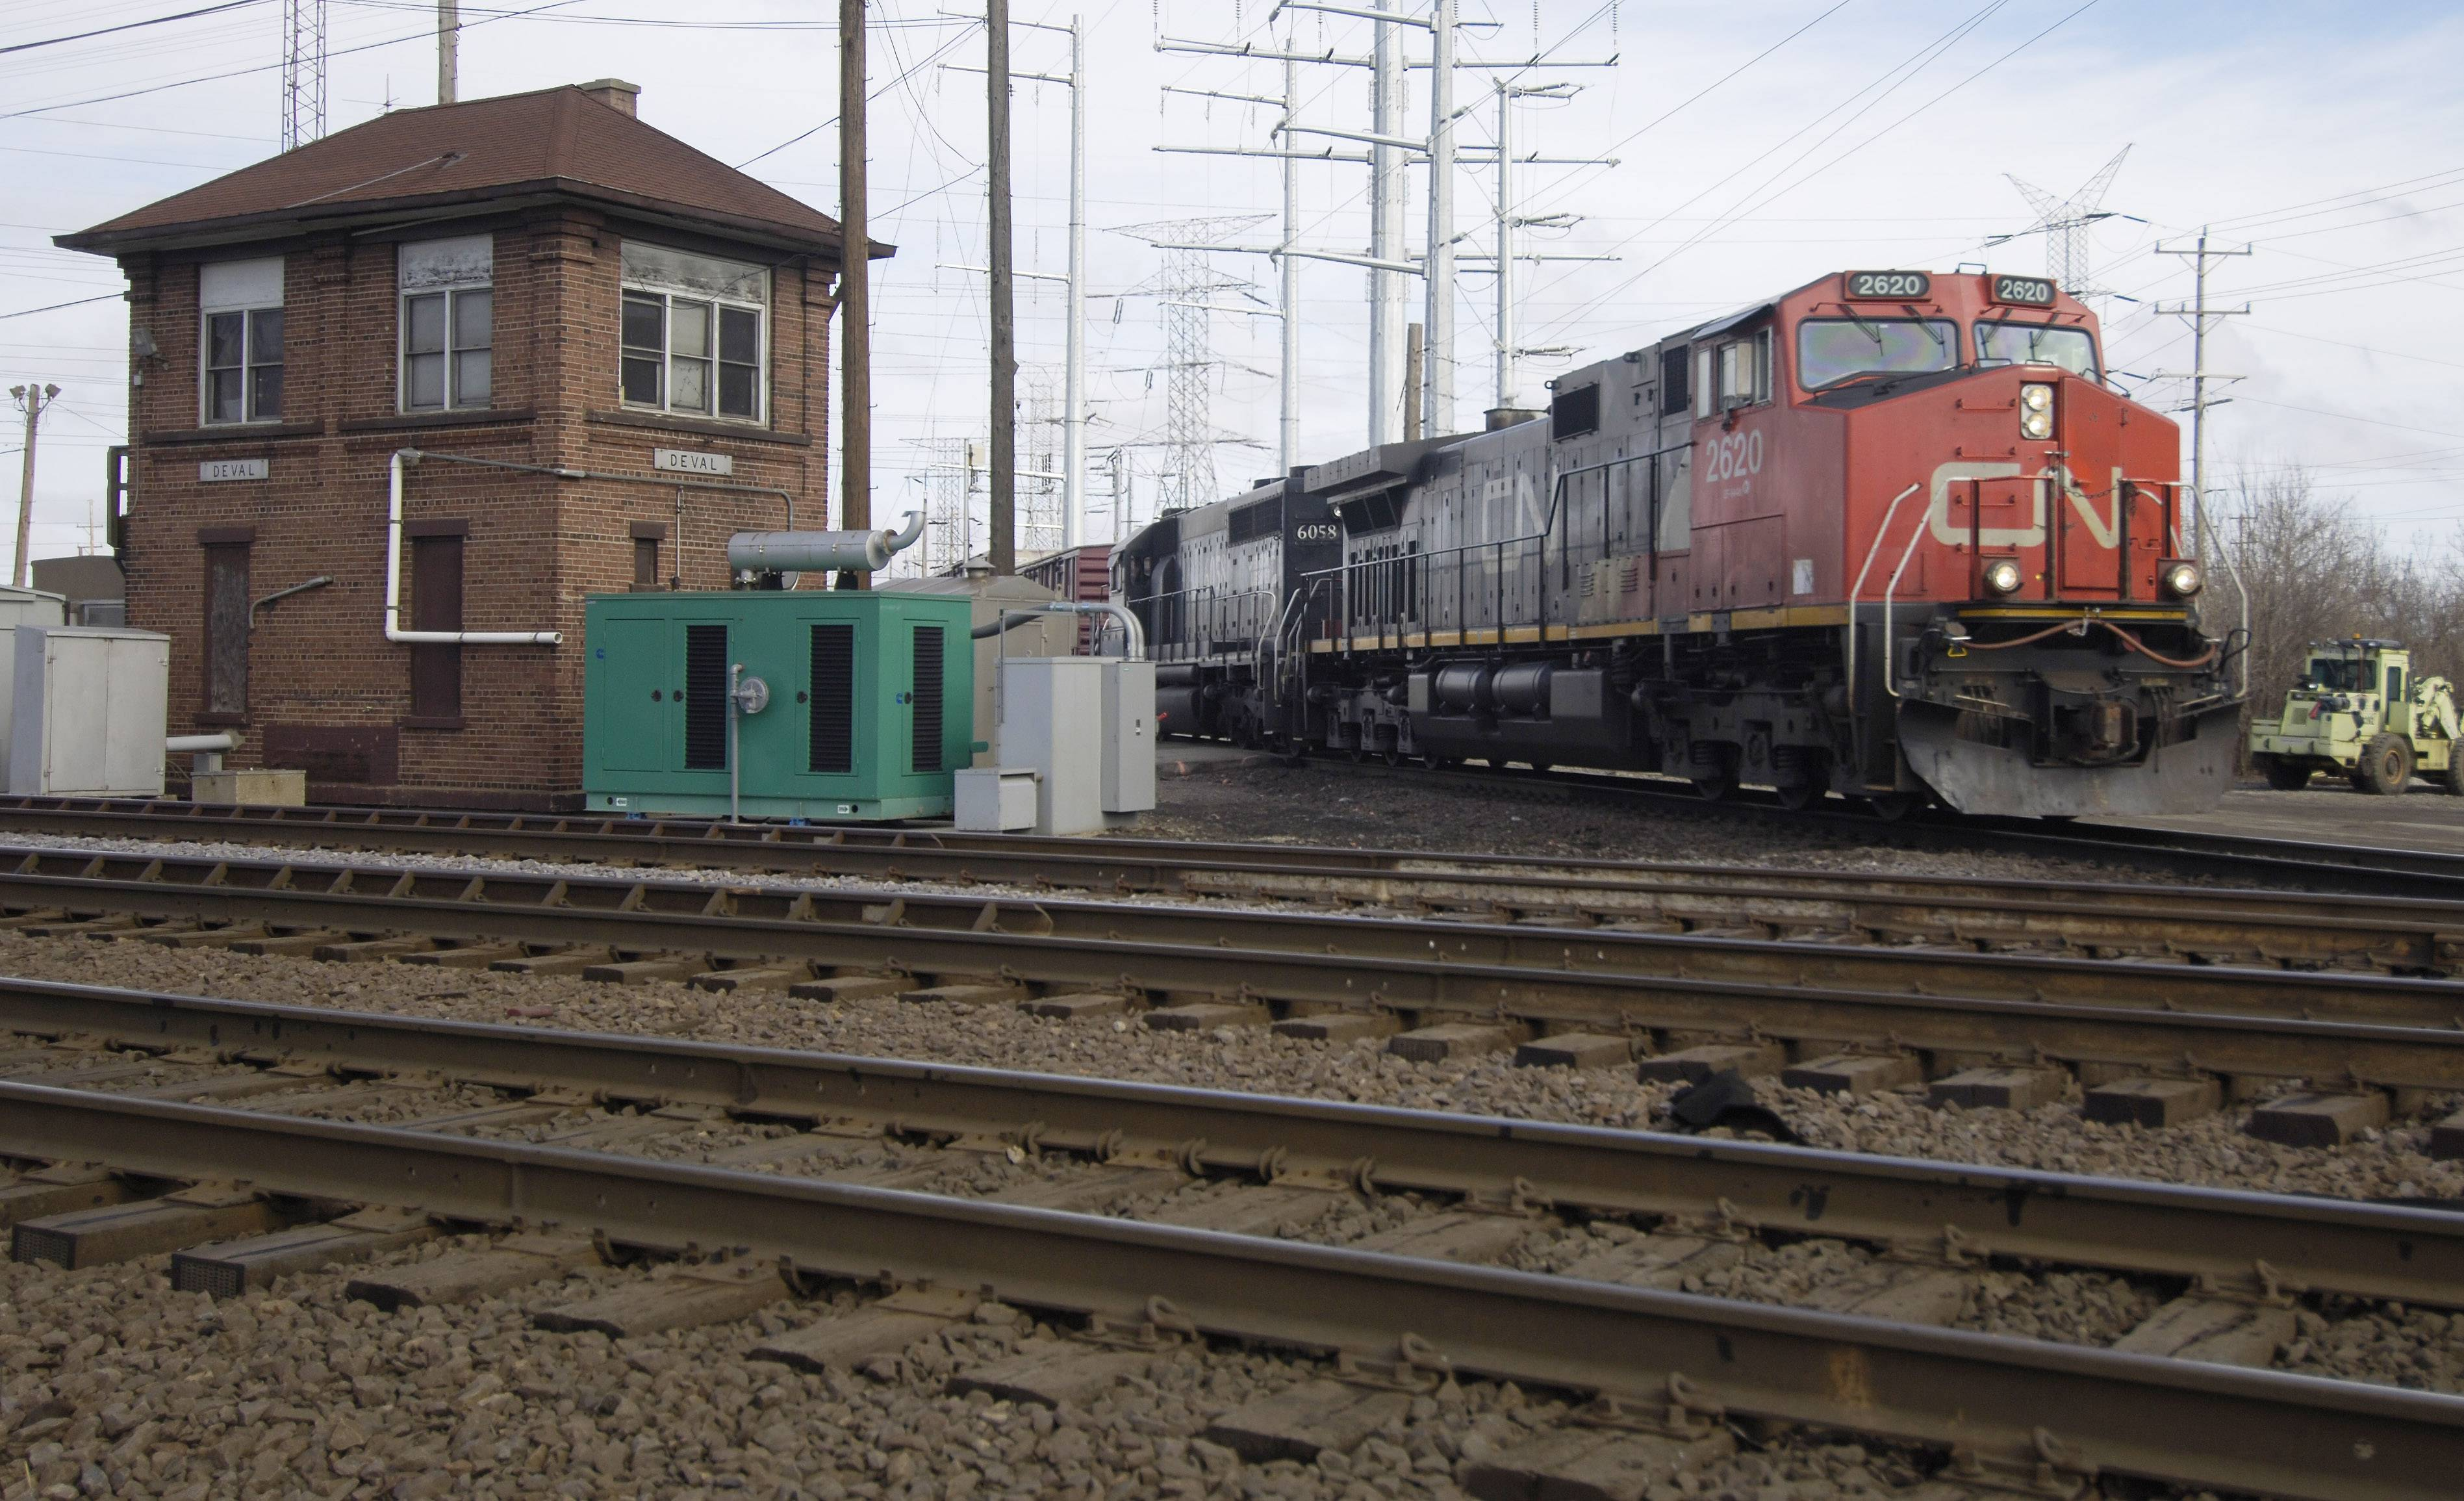 A southbound Canadian National train crosses the Metra/Union Pacific Notrthwest line at Deval tower in Des Plaines.